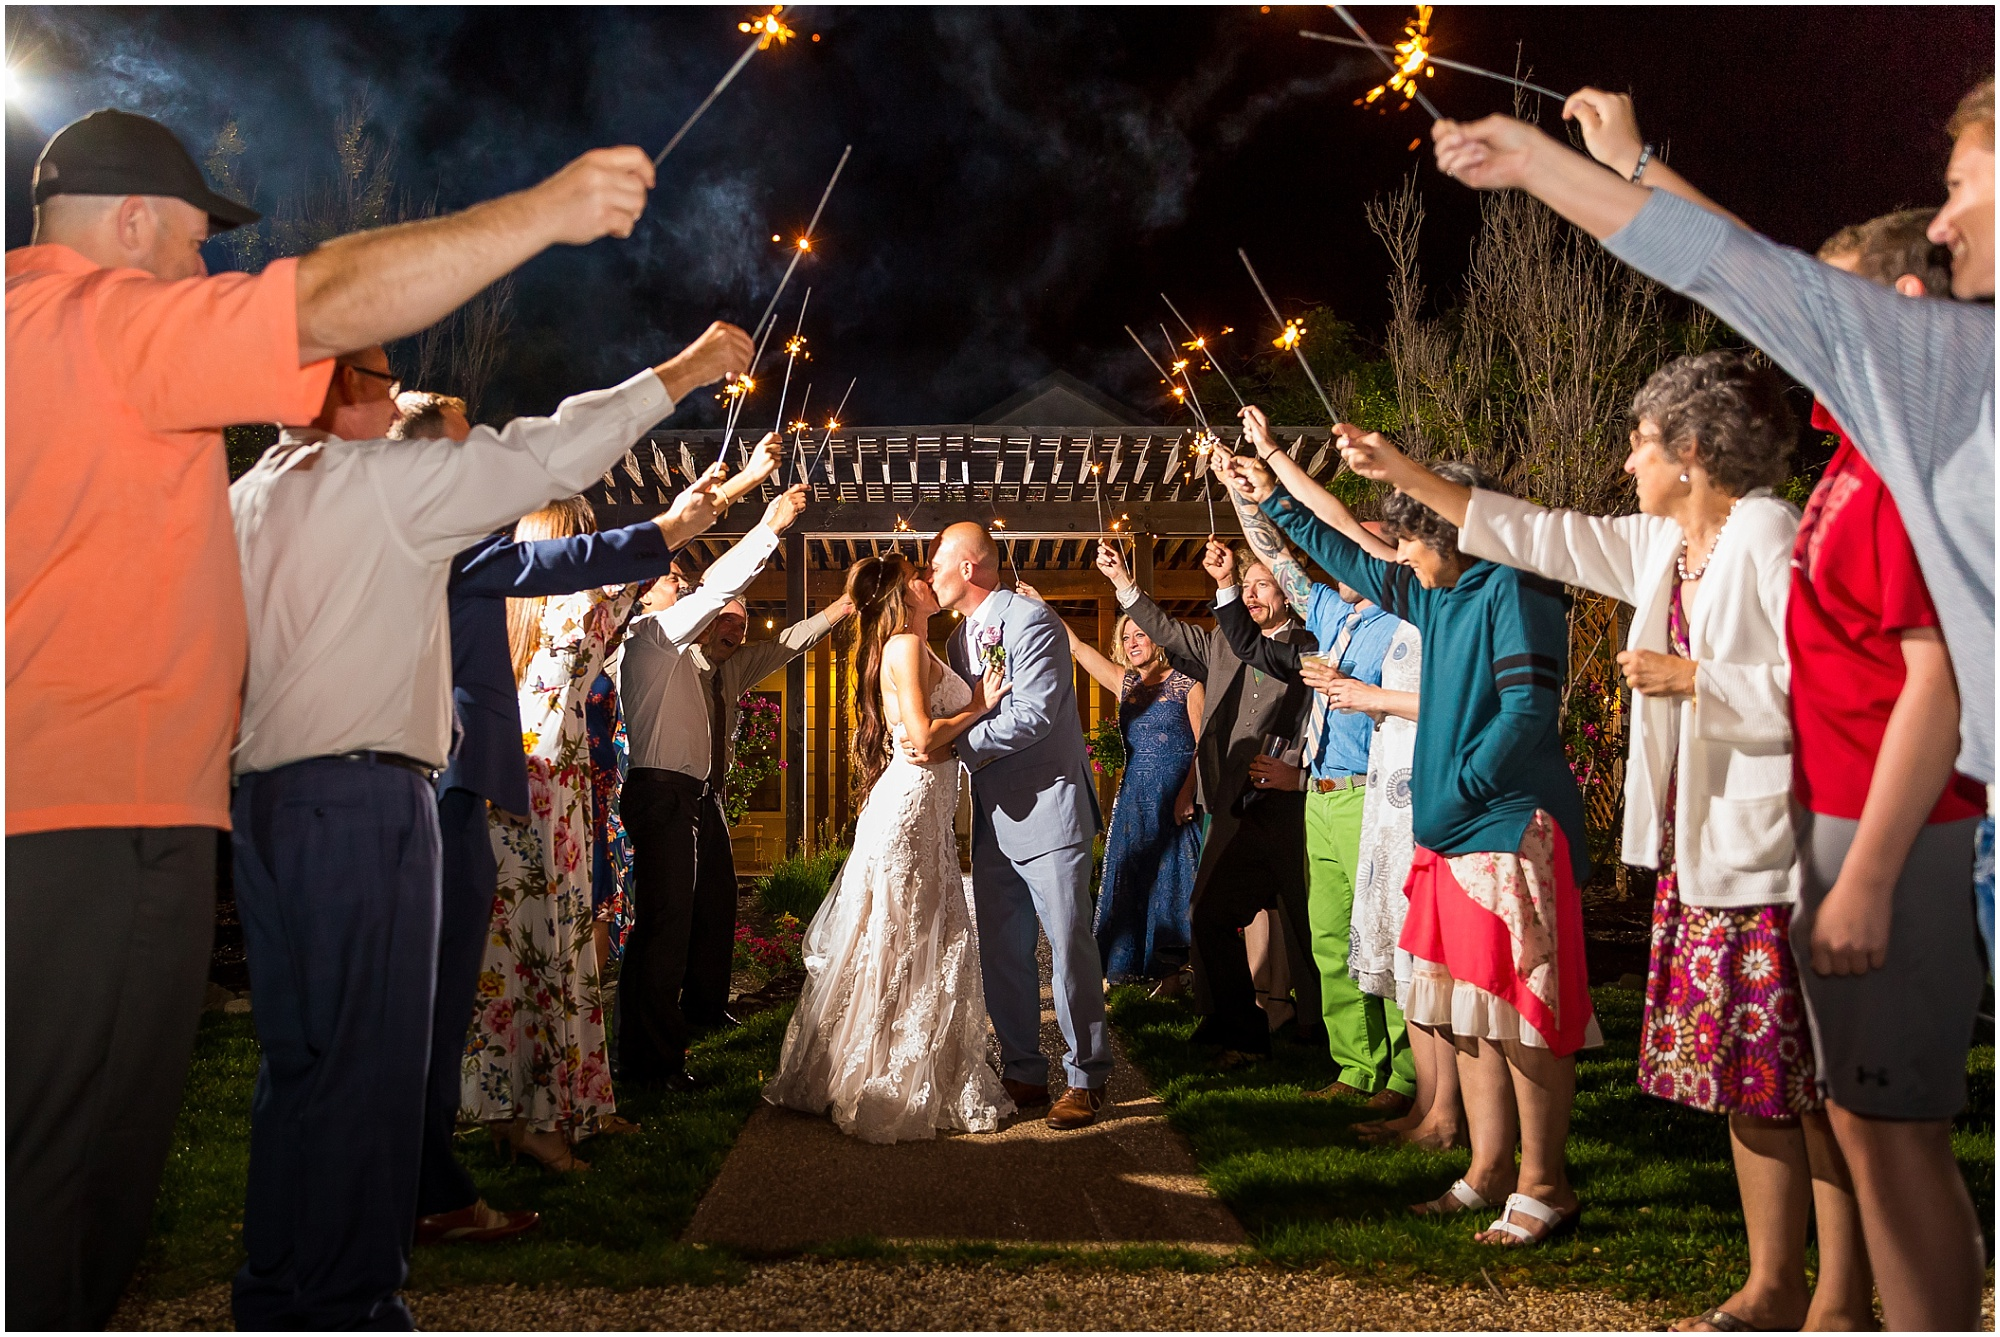 A bride and groom kiss under a tunnel of sparklers at the end of their wedding day | Jason & Melaina Photography | www.jasonandmelaina.com